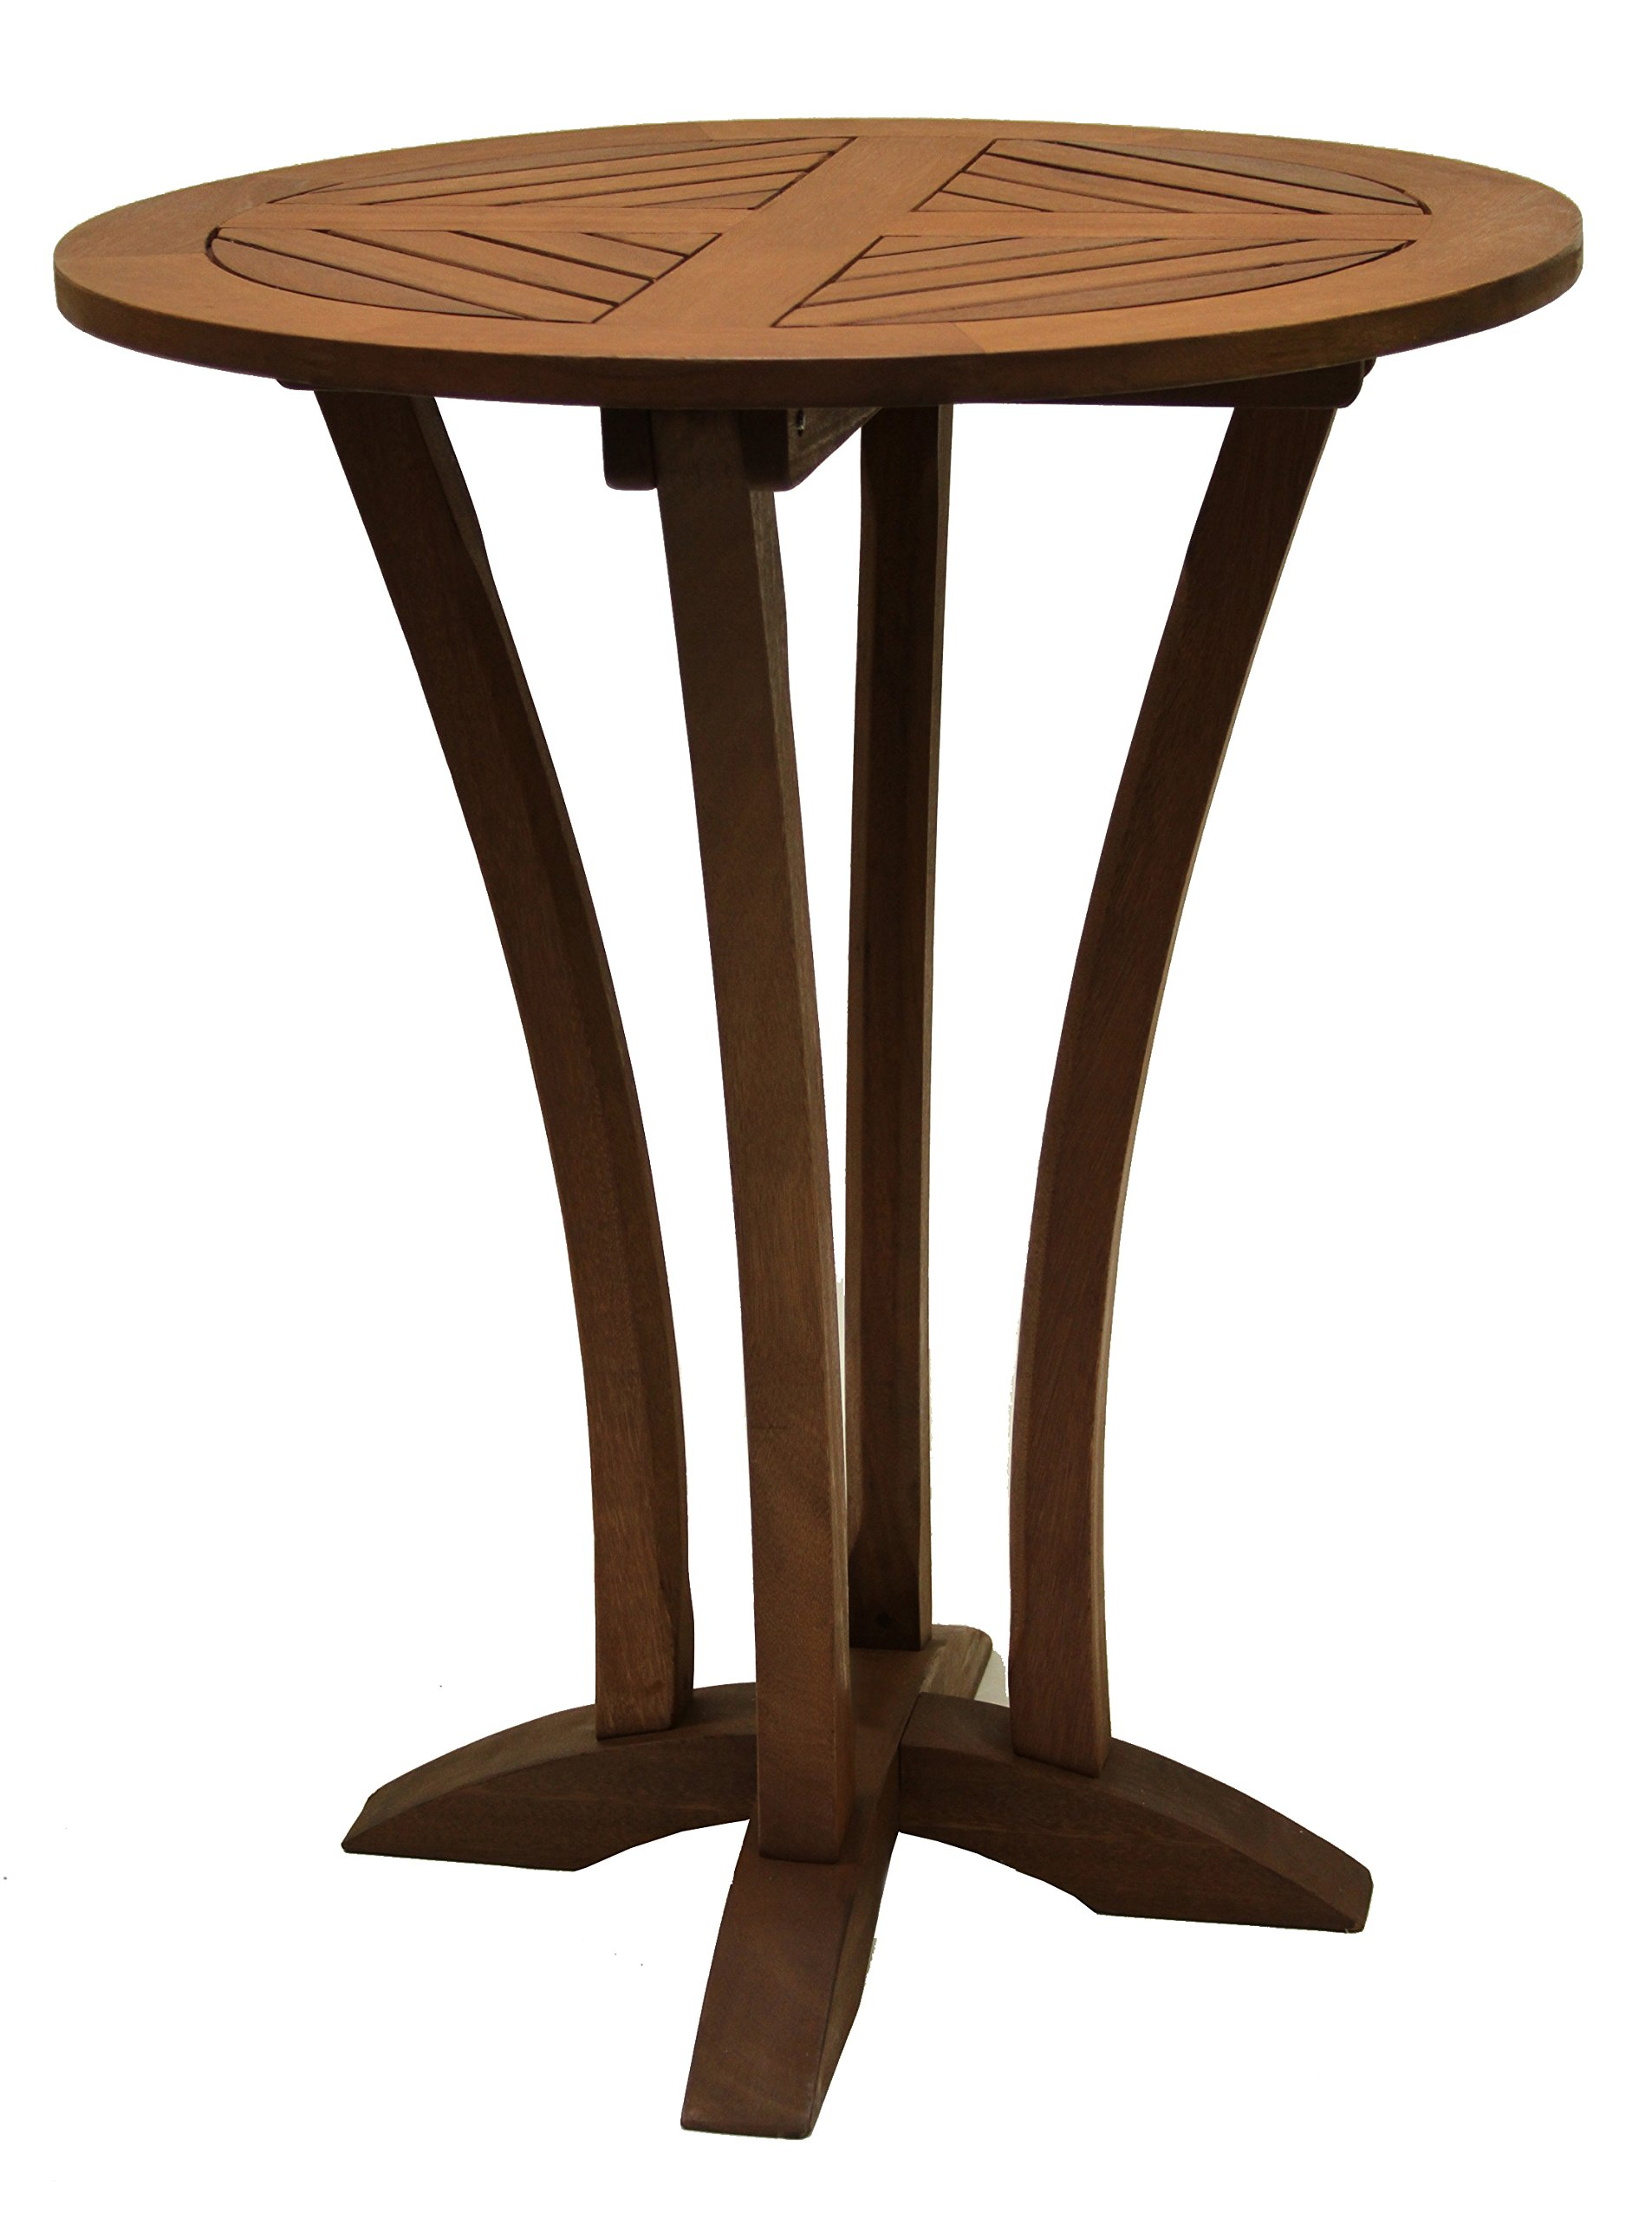 Outdoor Interiors Eucalyptus 30-Inch Diameter Round Bar Table by Outdoor Interiors